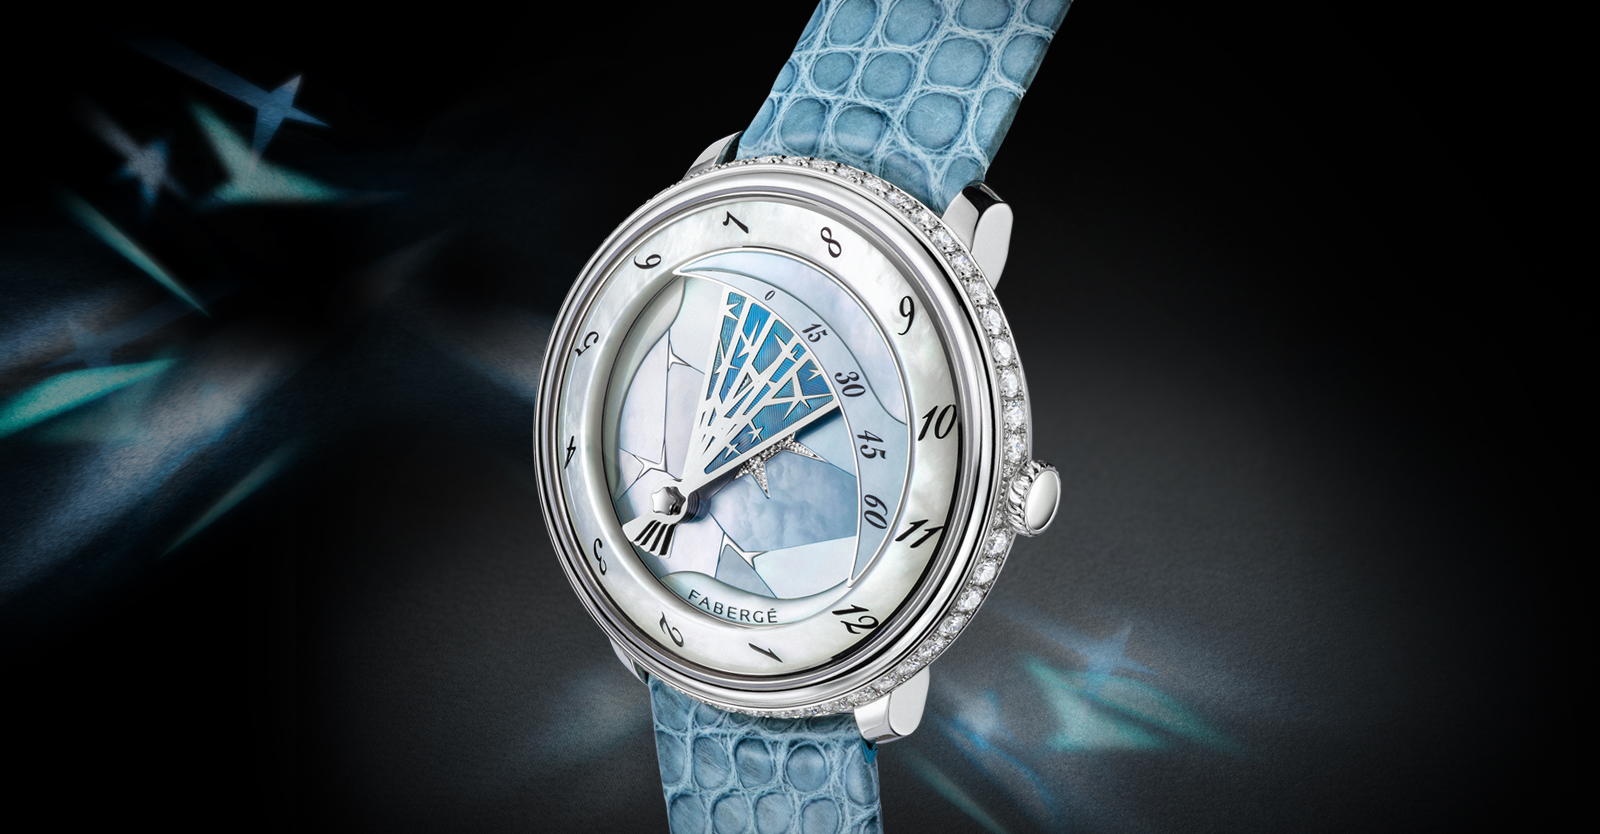 Fabergé Lady Compliquee Winter timepiece with white mother-of-pearl, diamonds and alligator strap.